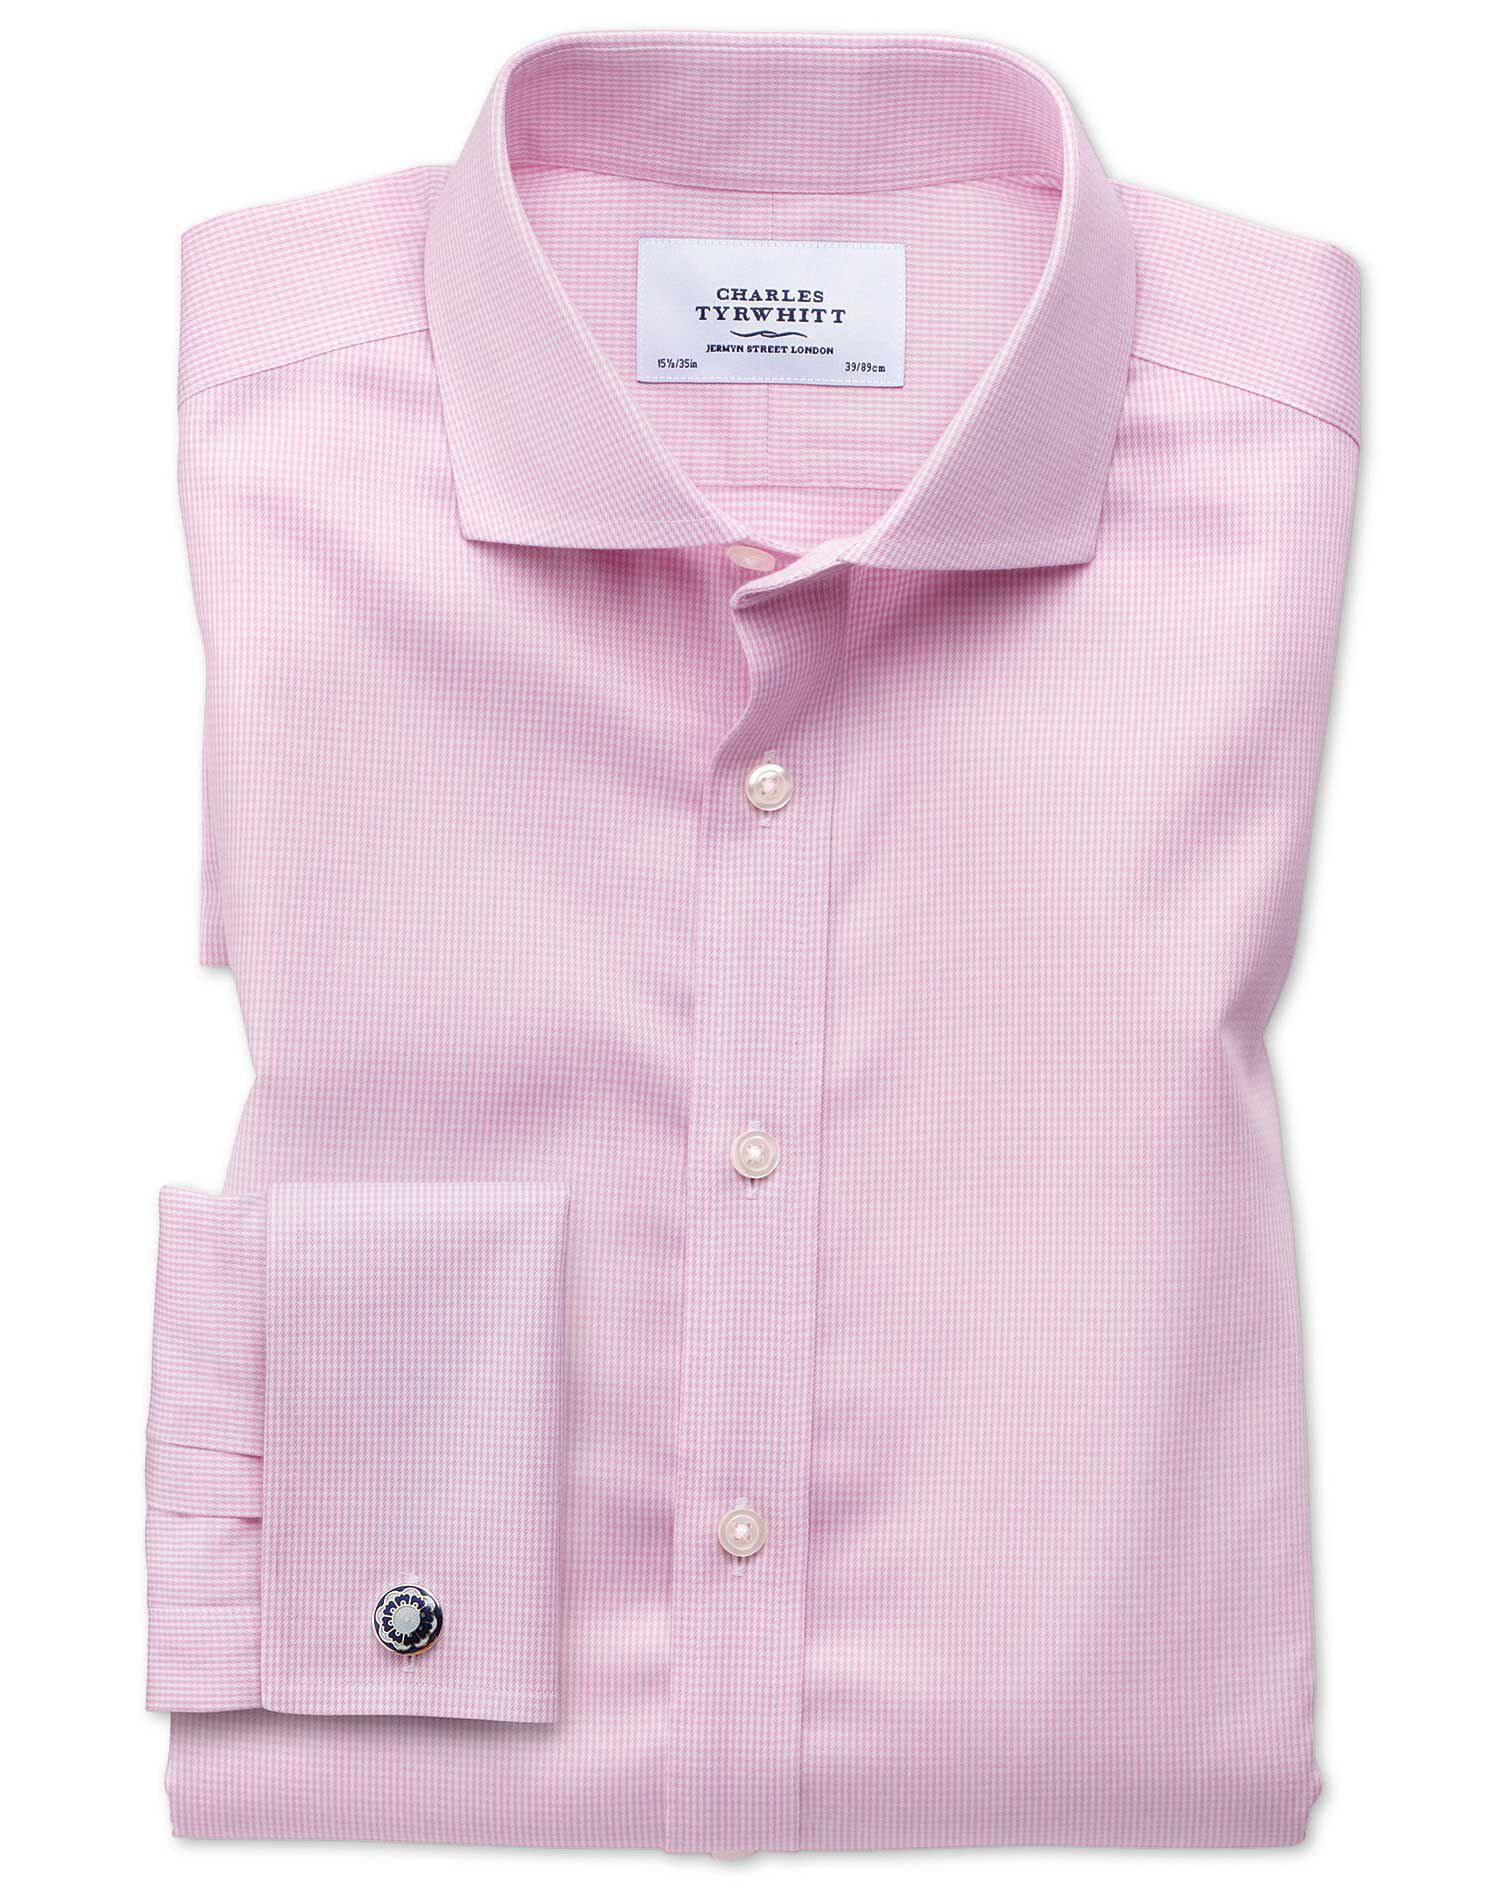 Slim Fit Cutaway Collar Non-Iron Puppytooth Light Pink Cotton Formal Shirt Double Cuff Size 16.5/36